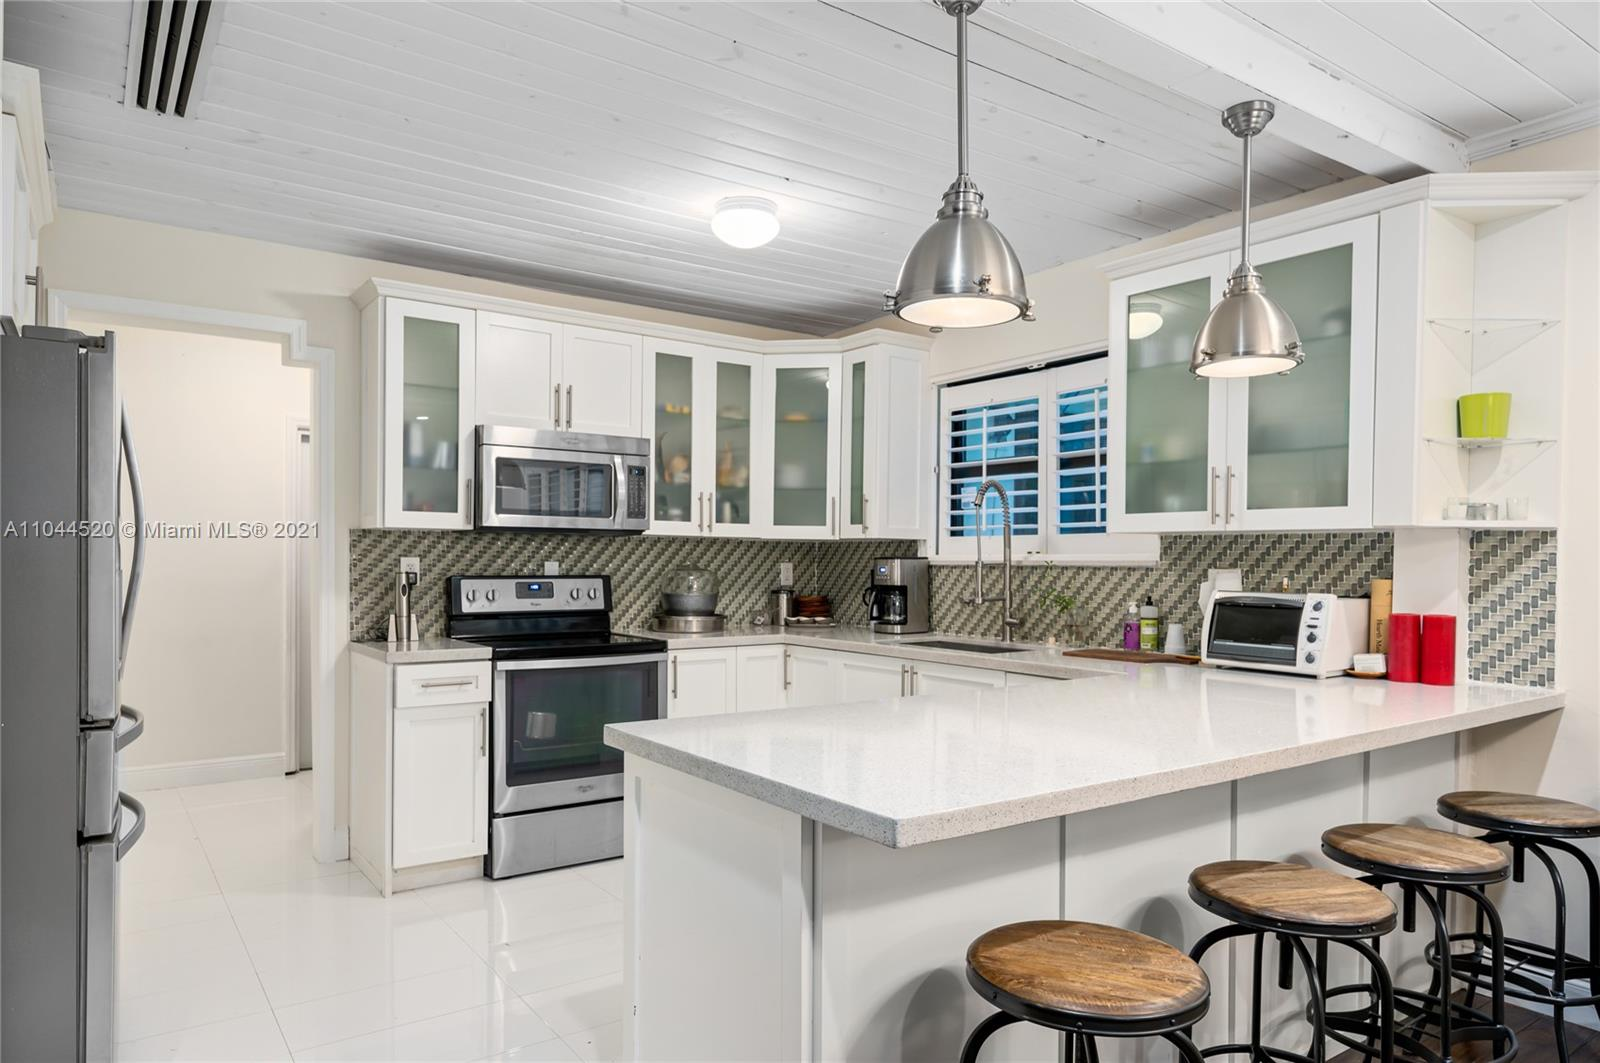 AMAZING OPPORTUNITY IN SOUTH MIAMI ON OVER A HALF ACRE LOT. THIS POOL HOME HAS BEEN COMPLETELY REMODELED AND OFFERS A SEPARATE ONE BEDROOM GUEST HOUSE.  CALL TO SCHEDULE YOUR APPOINTMENT